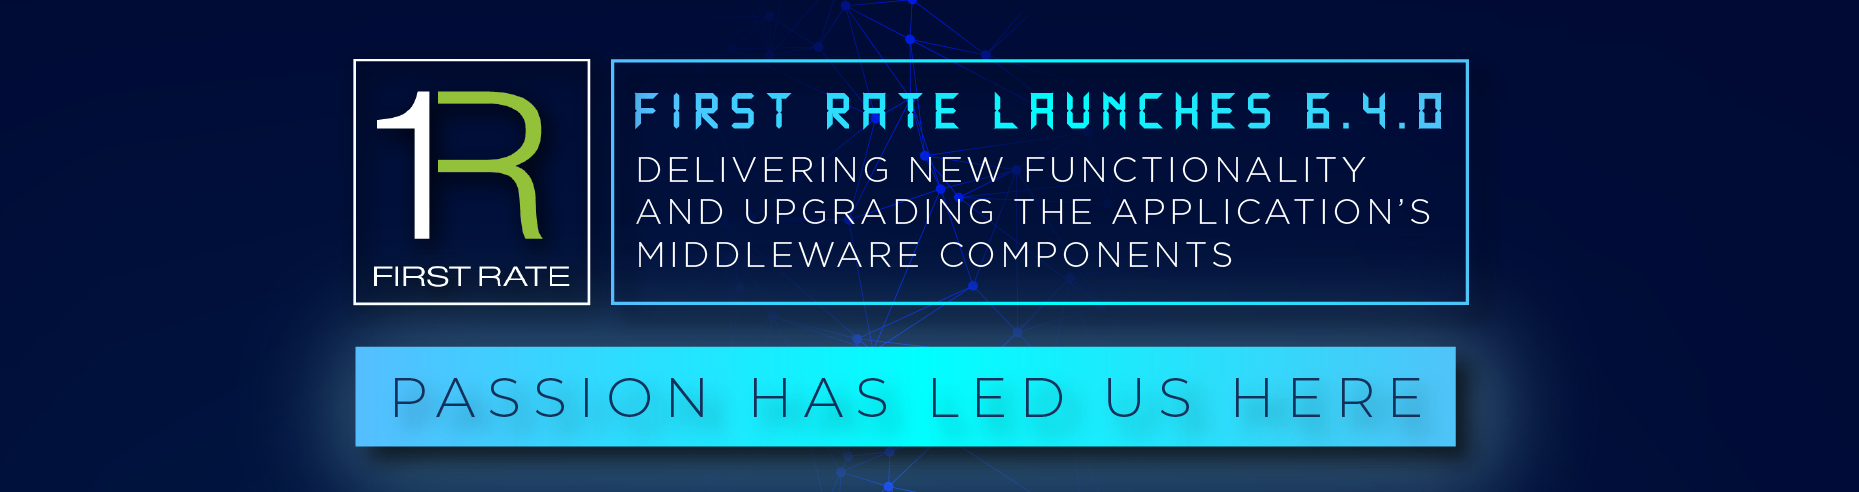 First Rate Launches 6.4.0- Infographic Highlights